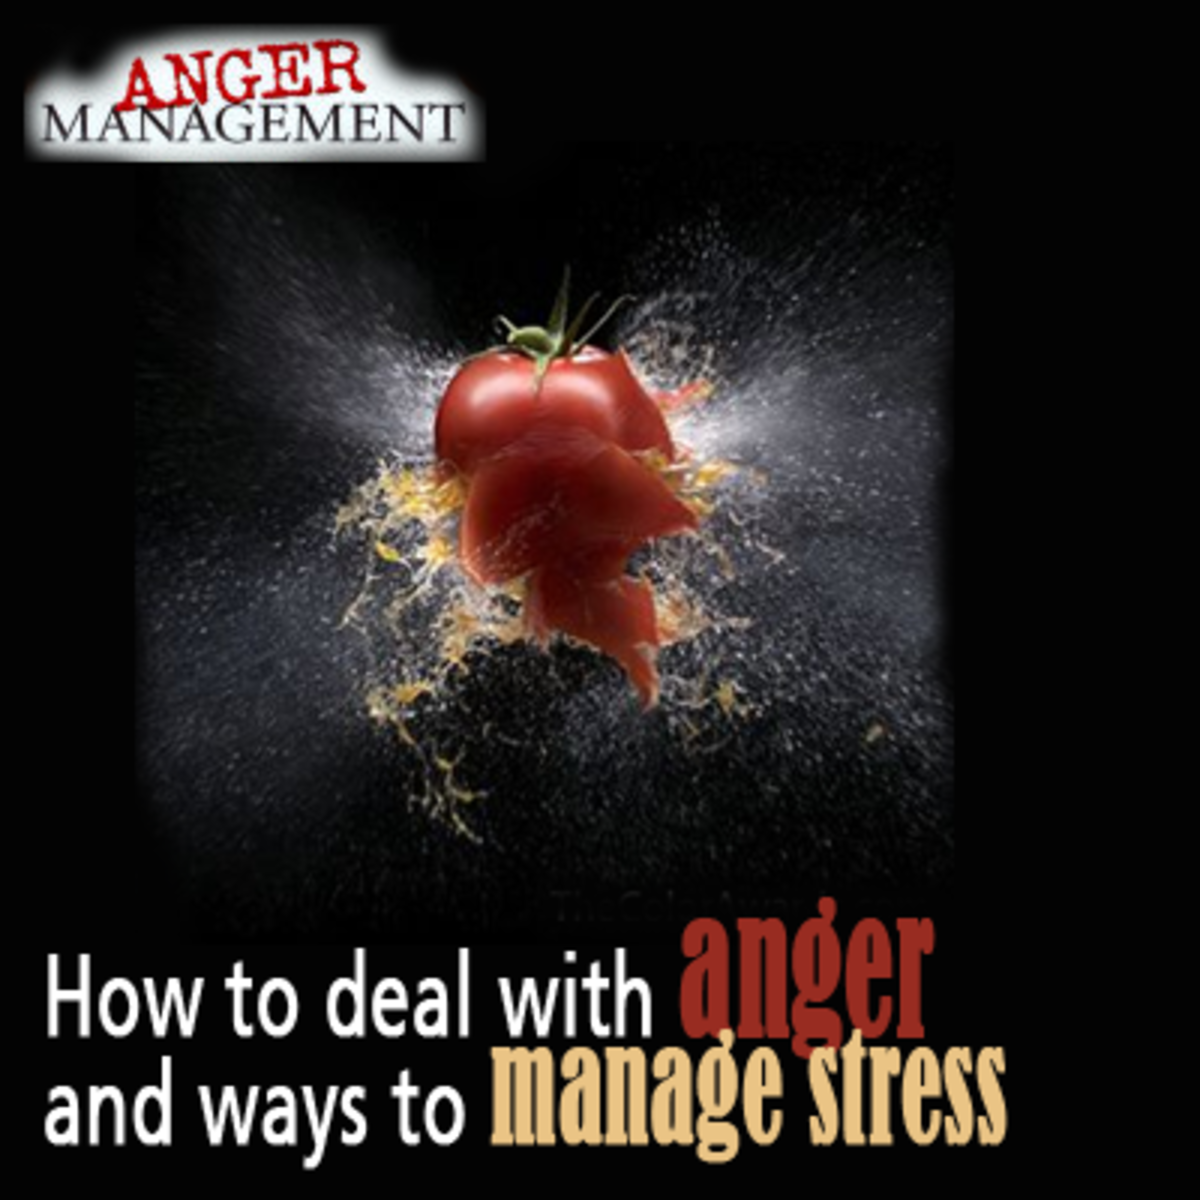 How to deal with anger and ways to manage stress